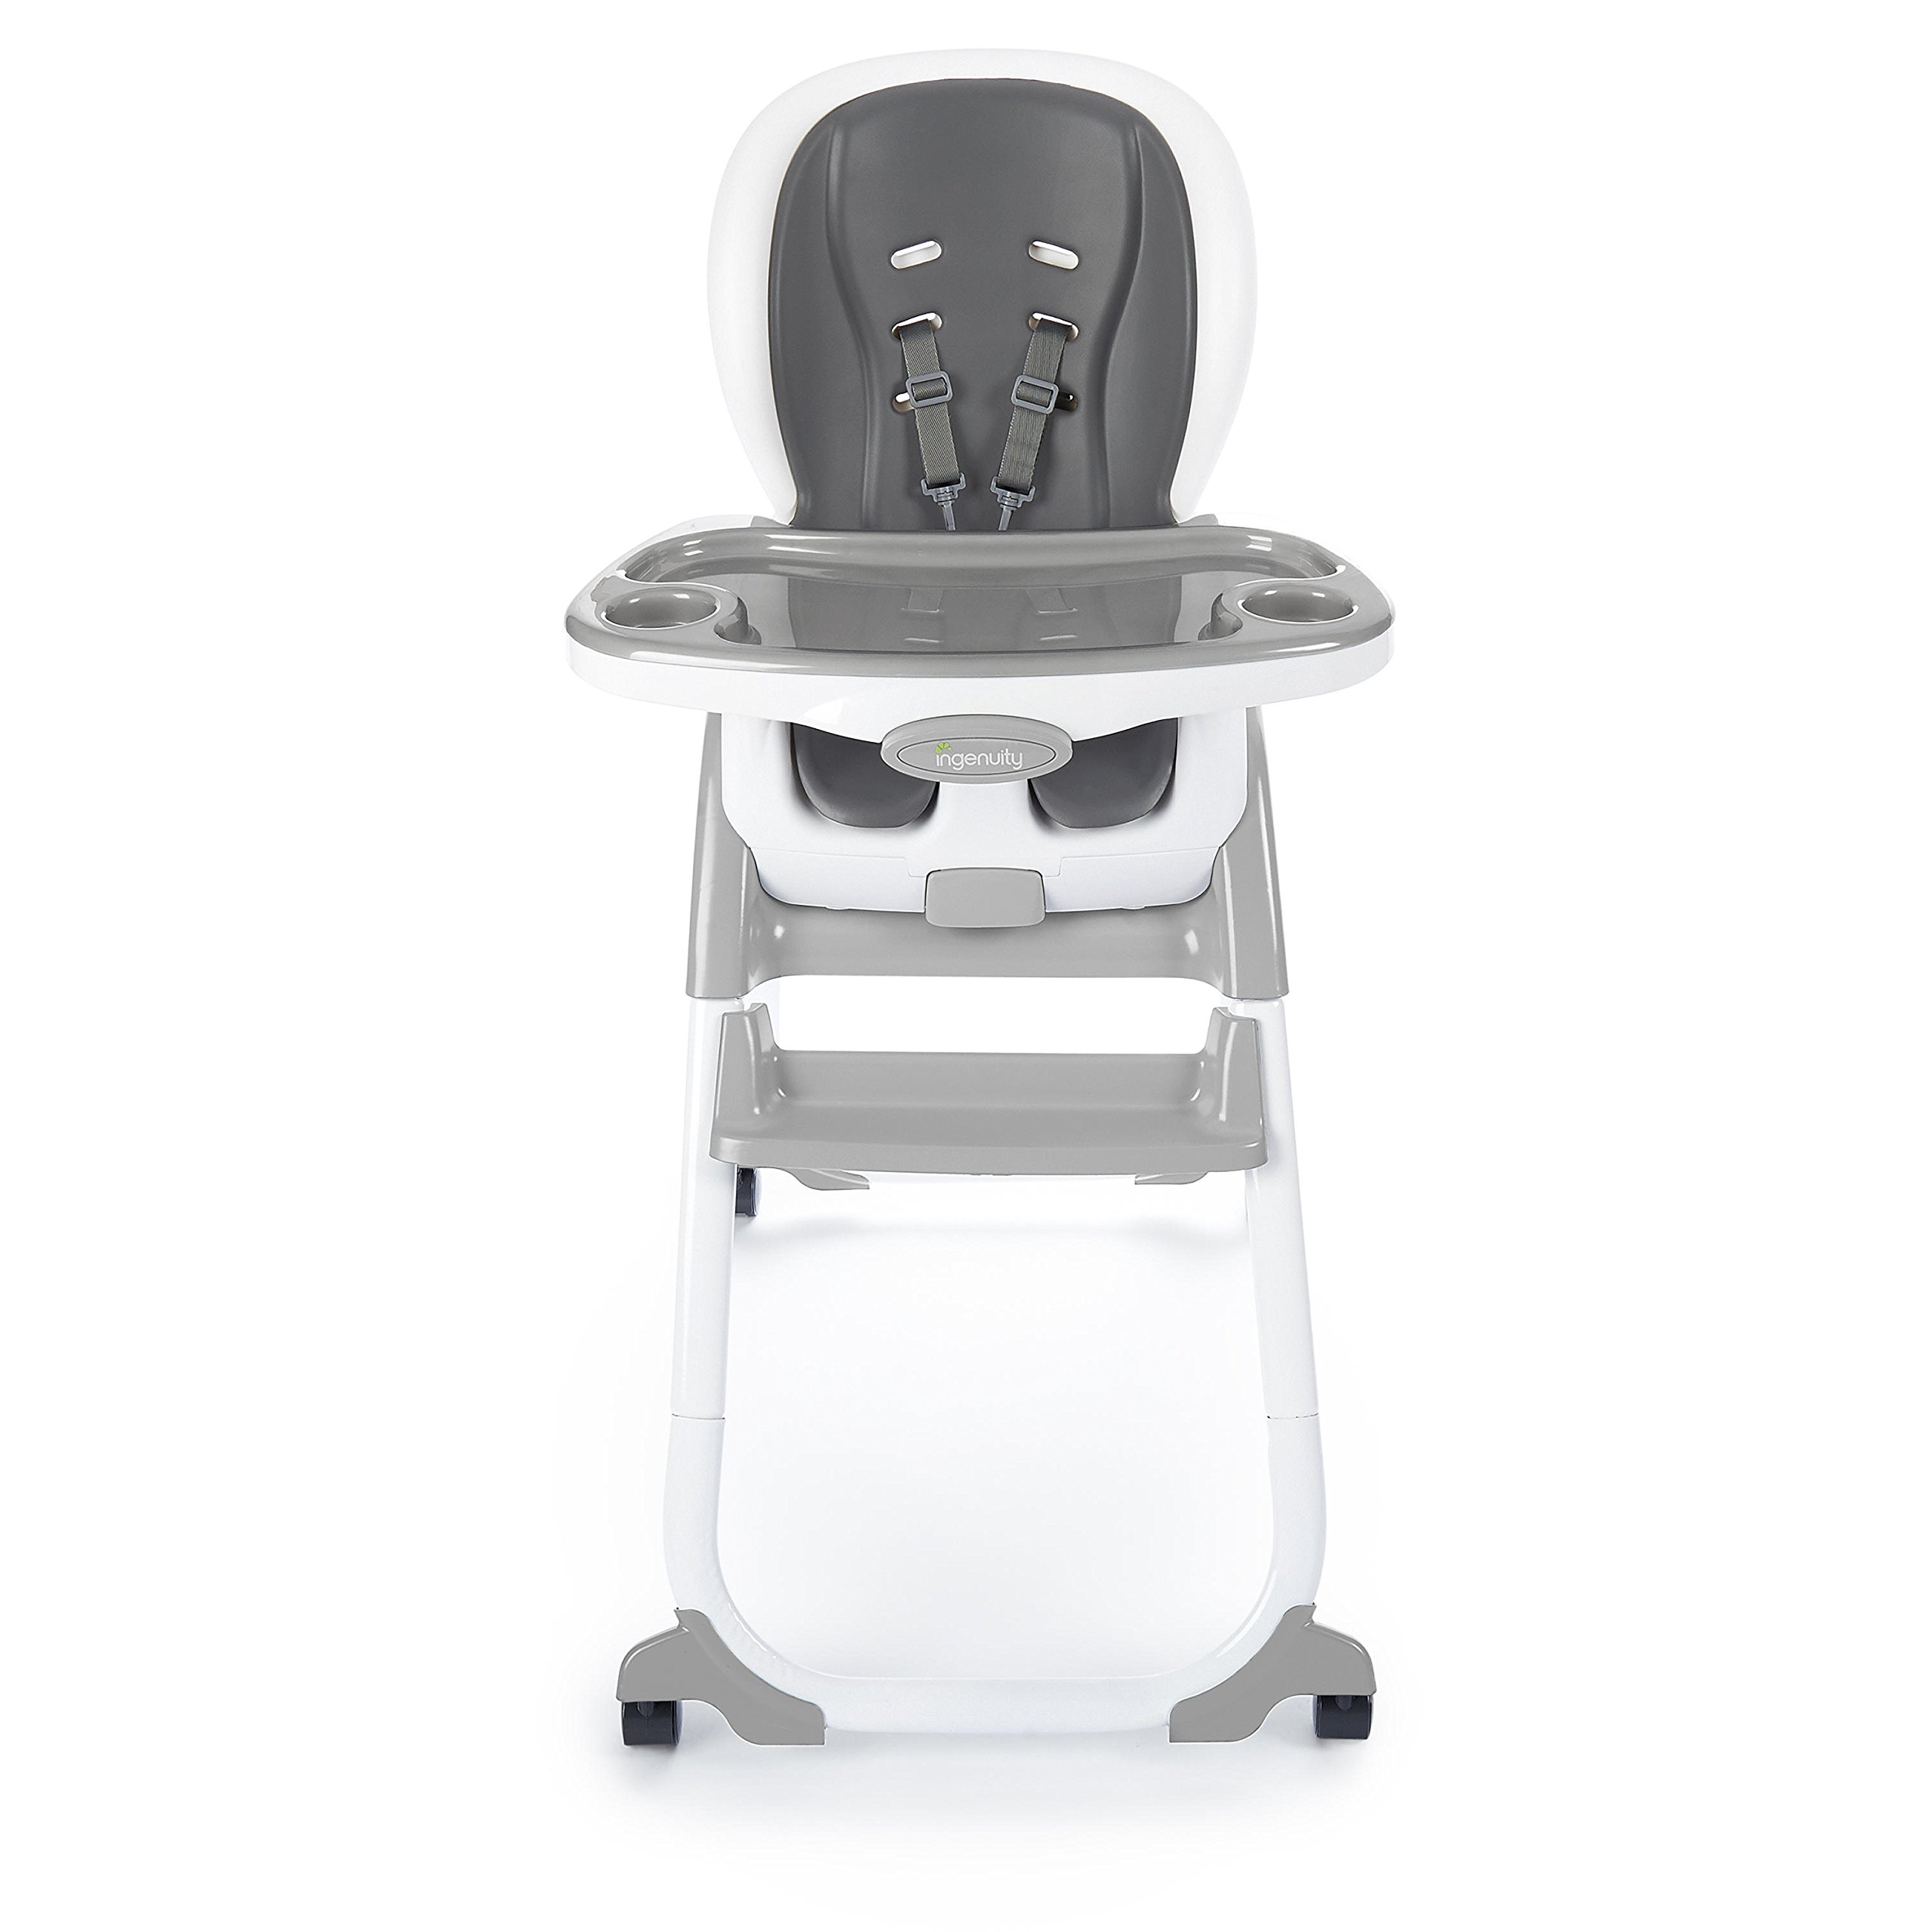 Ingenuity SmartClean Trio Elite Chair